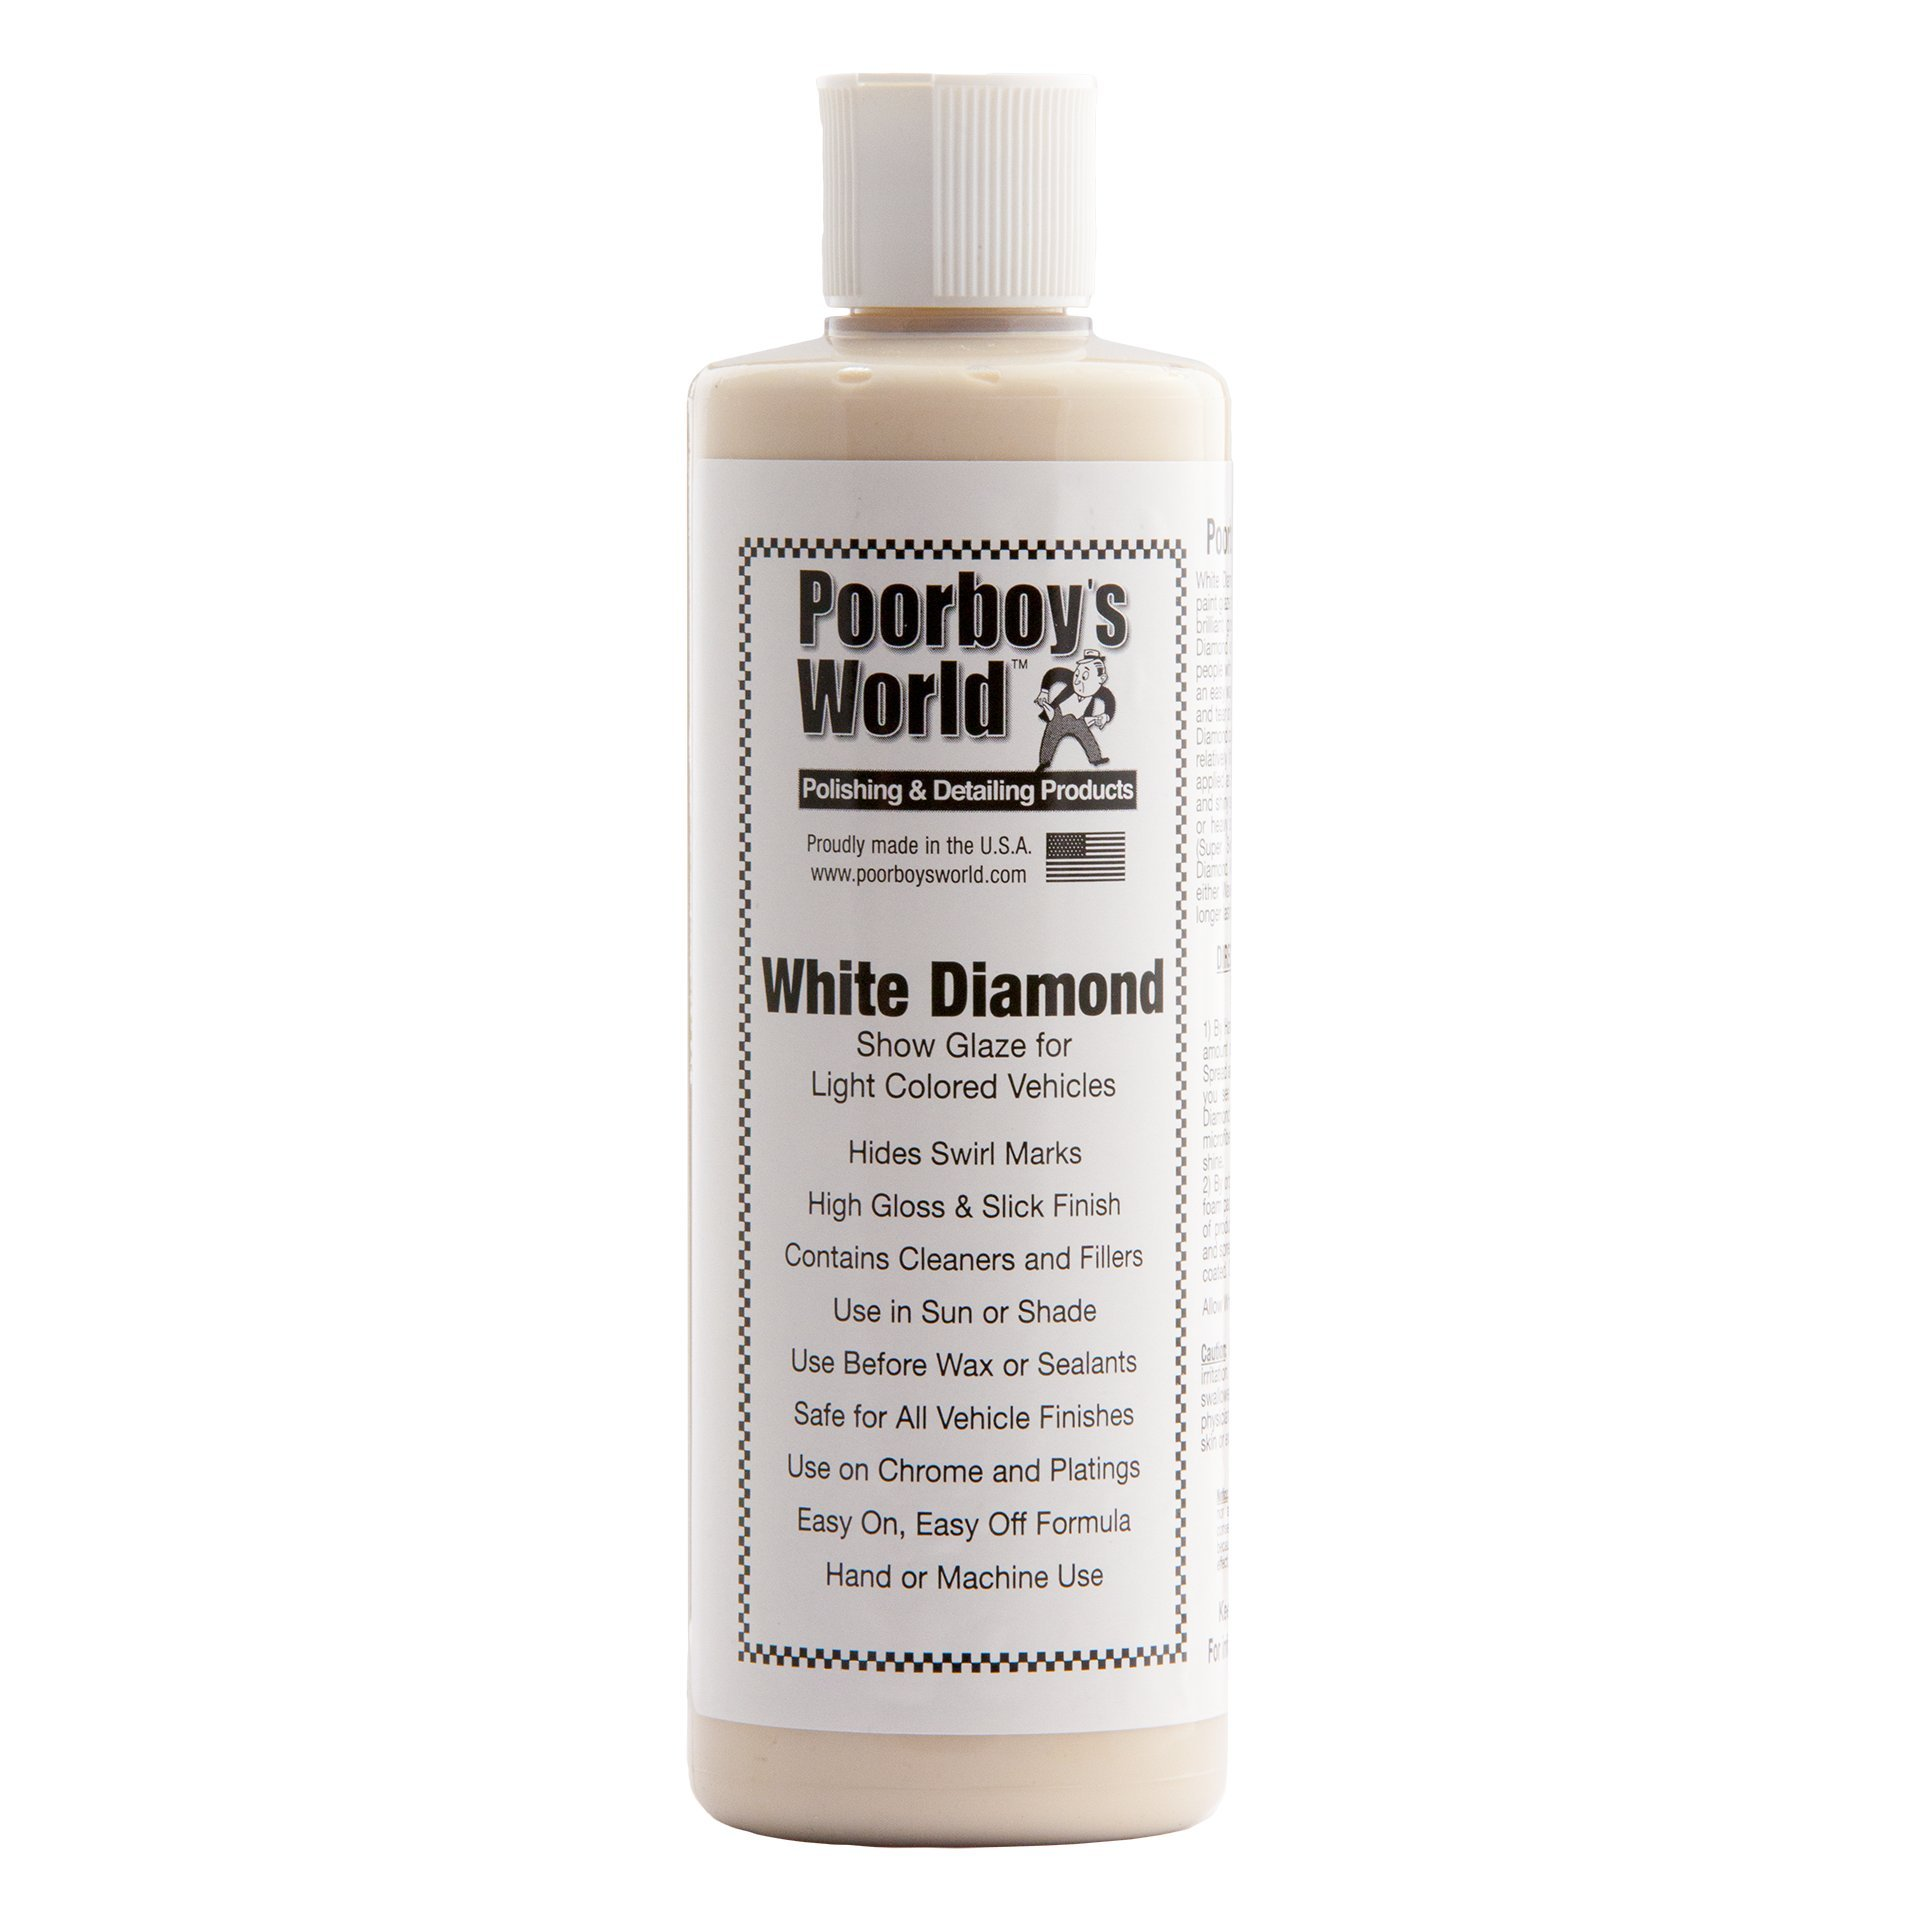 Poorboy's World White Diamond Car Shine 16oz